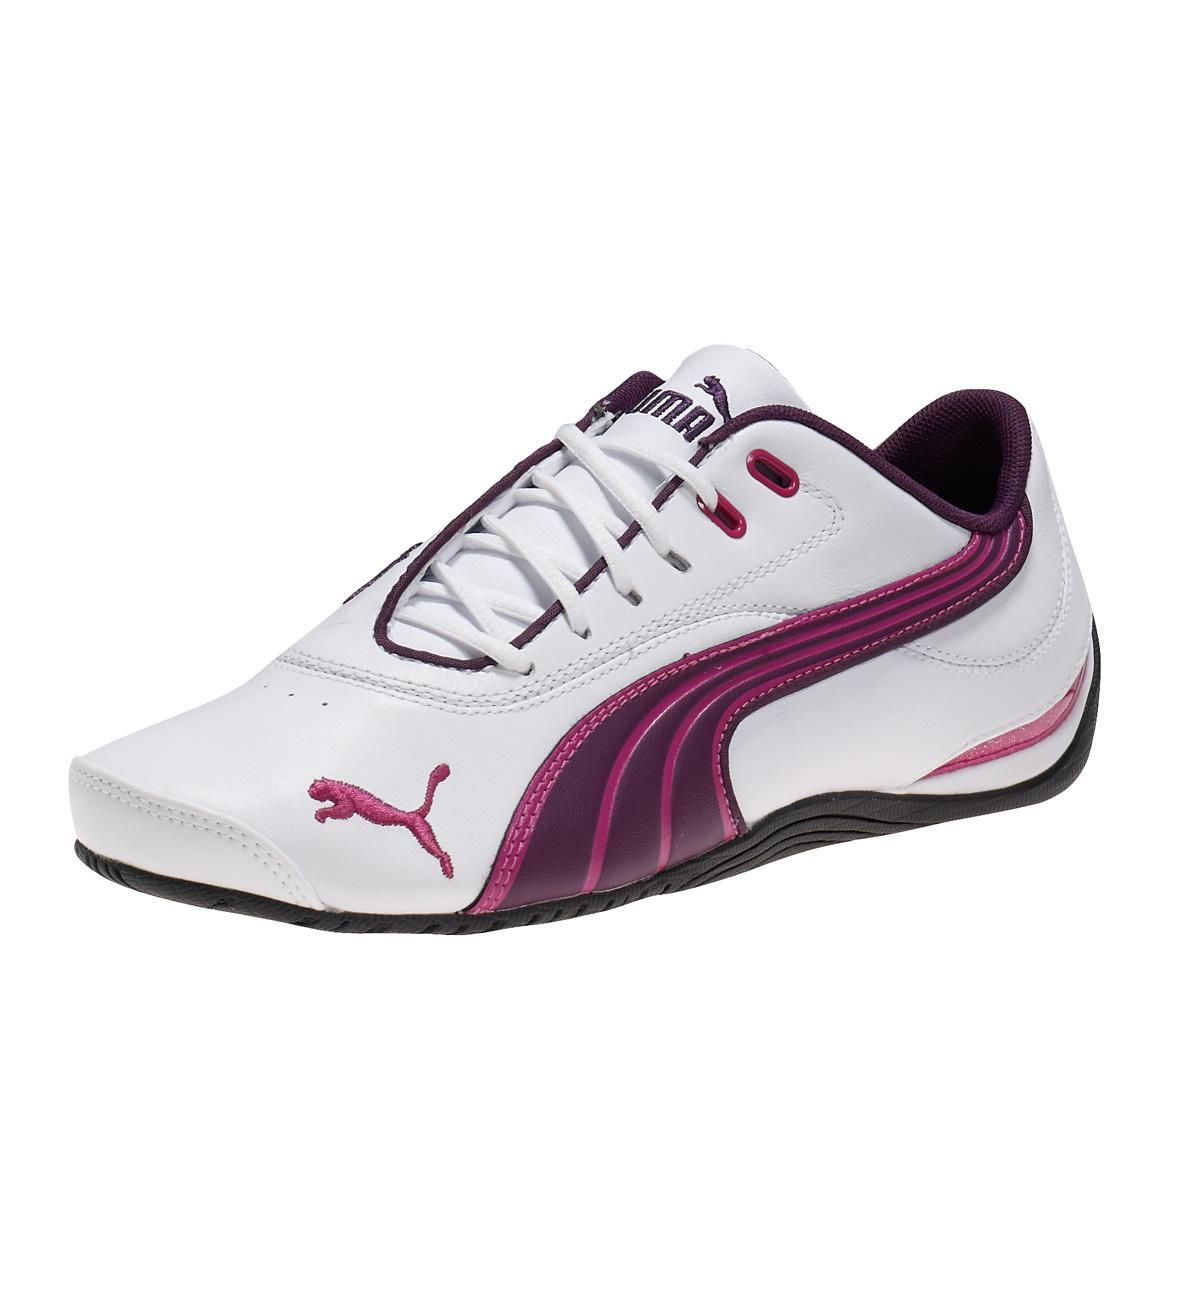 Now Buy Puma Drift Cat Iii Women Shoes White-Shadow Purple-Festival Fuchsia  US Online Save Up From Outlet Store at Pumashoes.